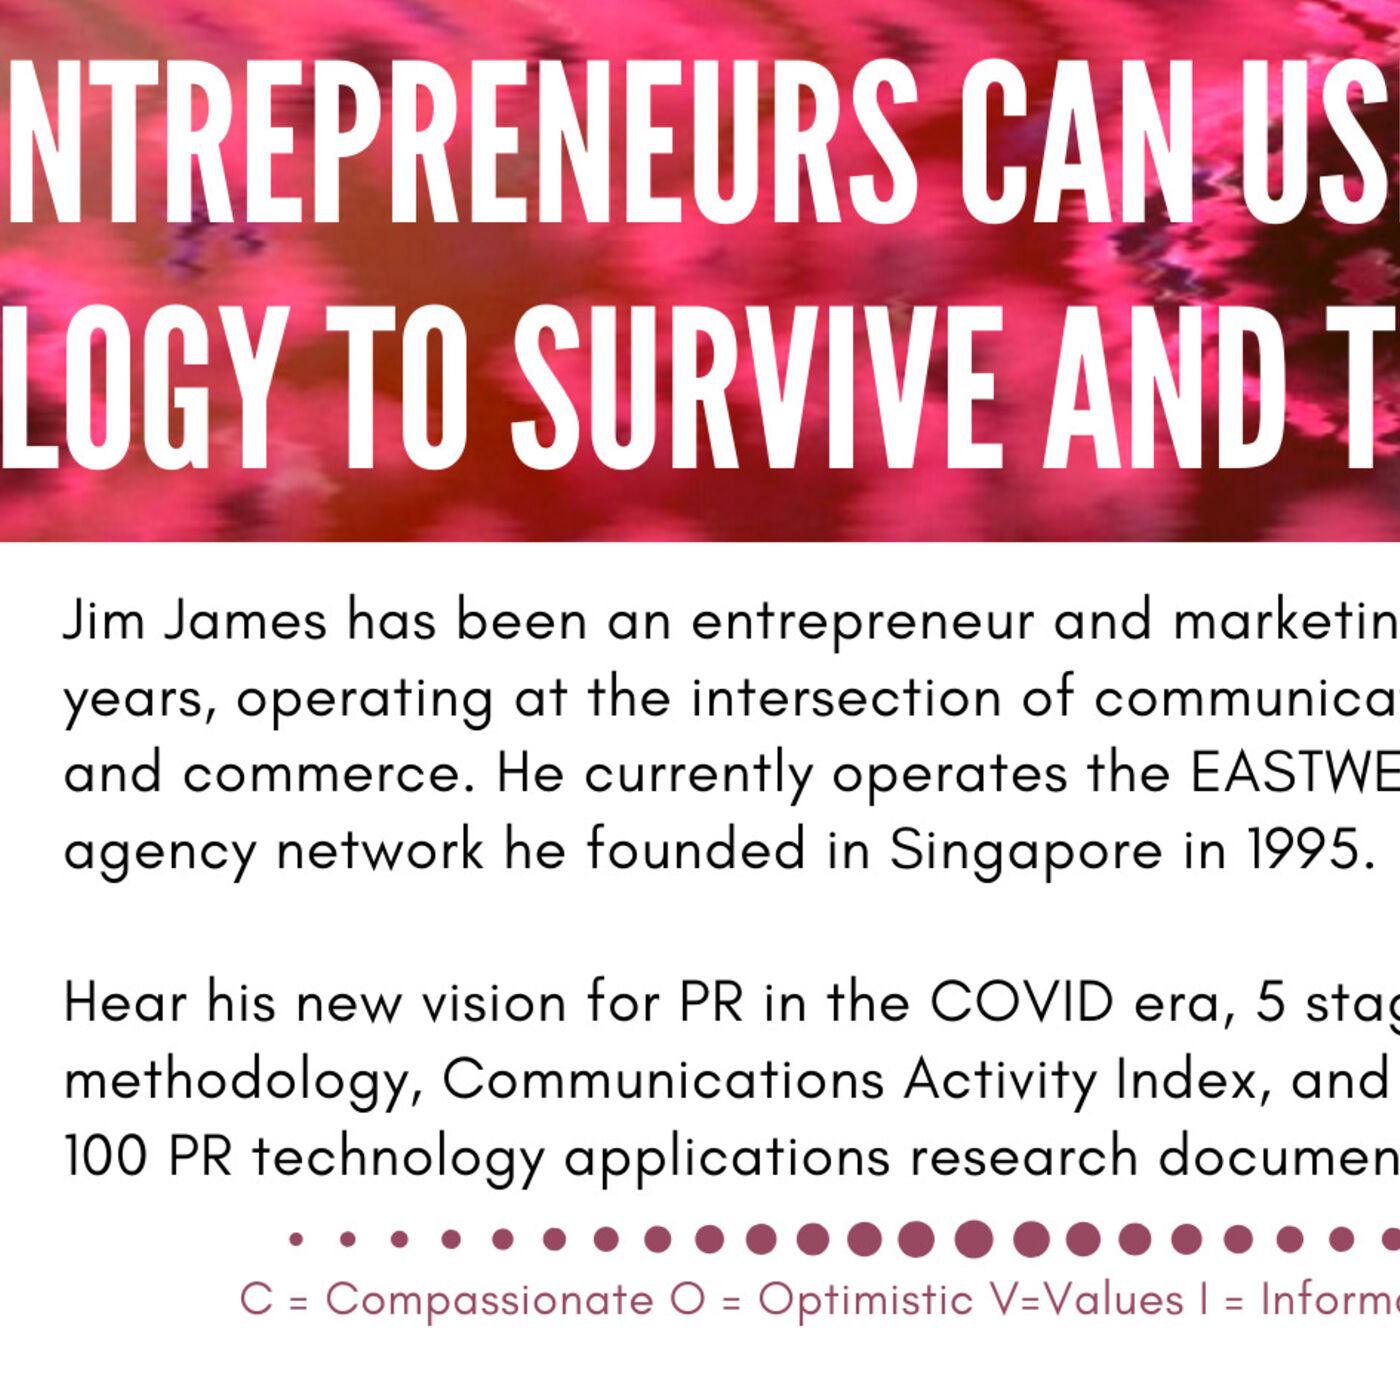 How can entrepreneurs survive and thrive using PR technology during COVID Times?